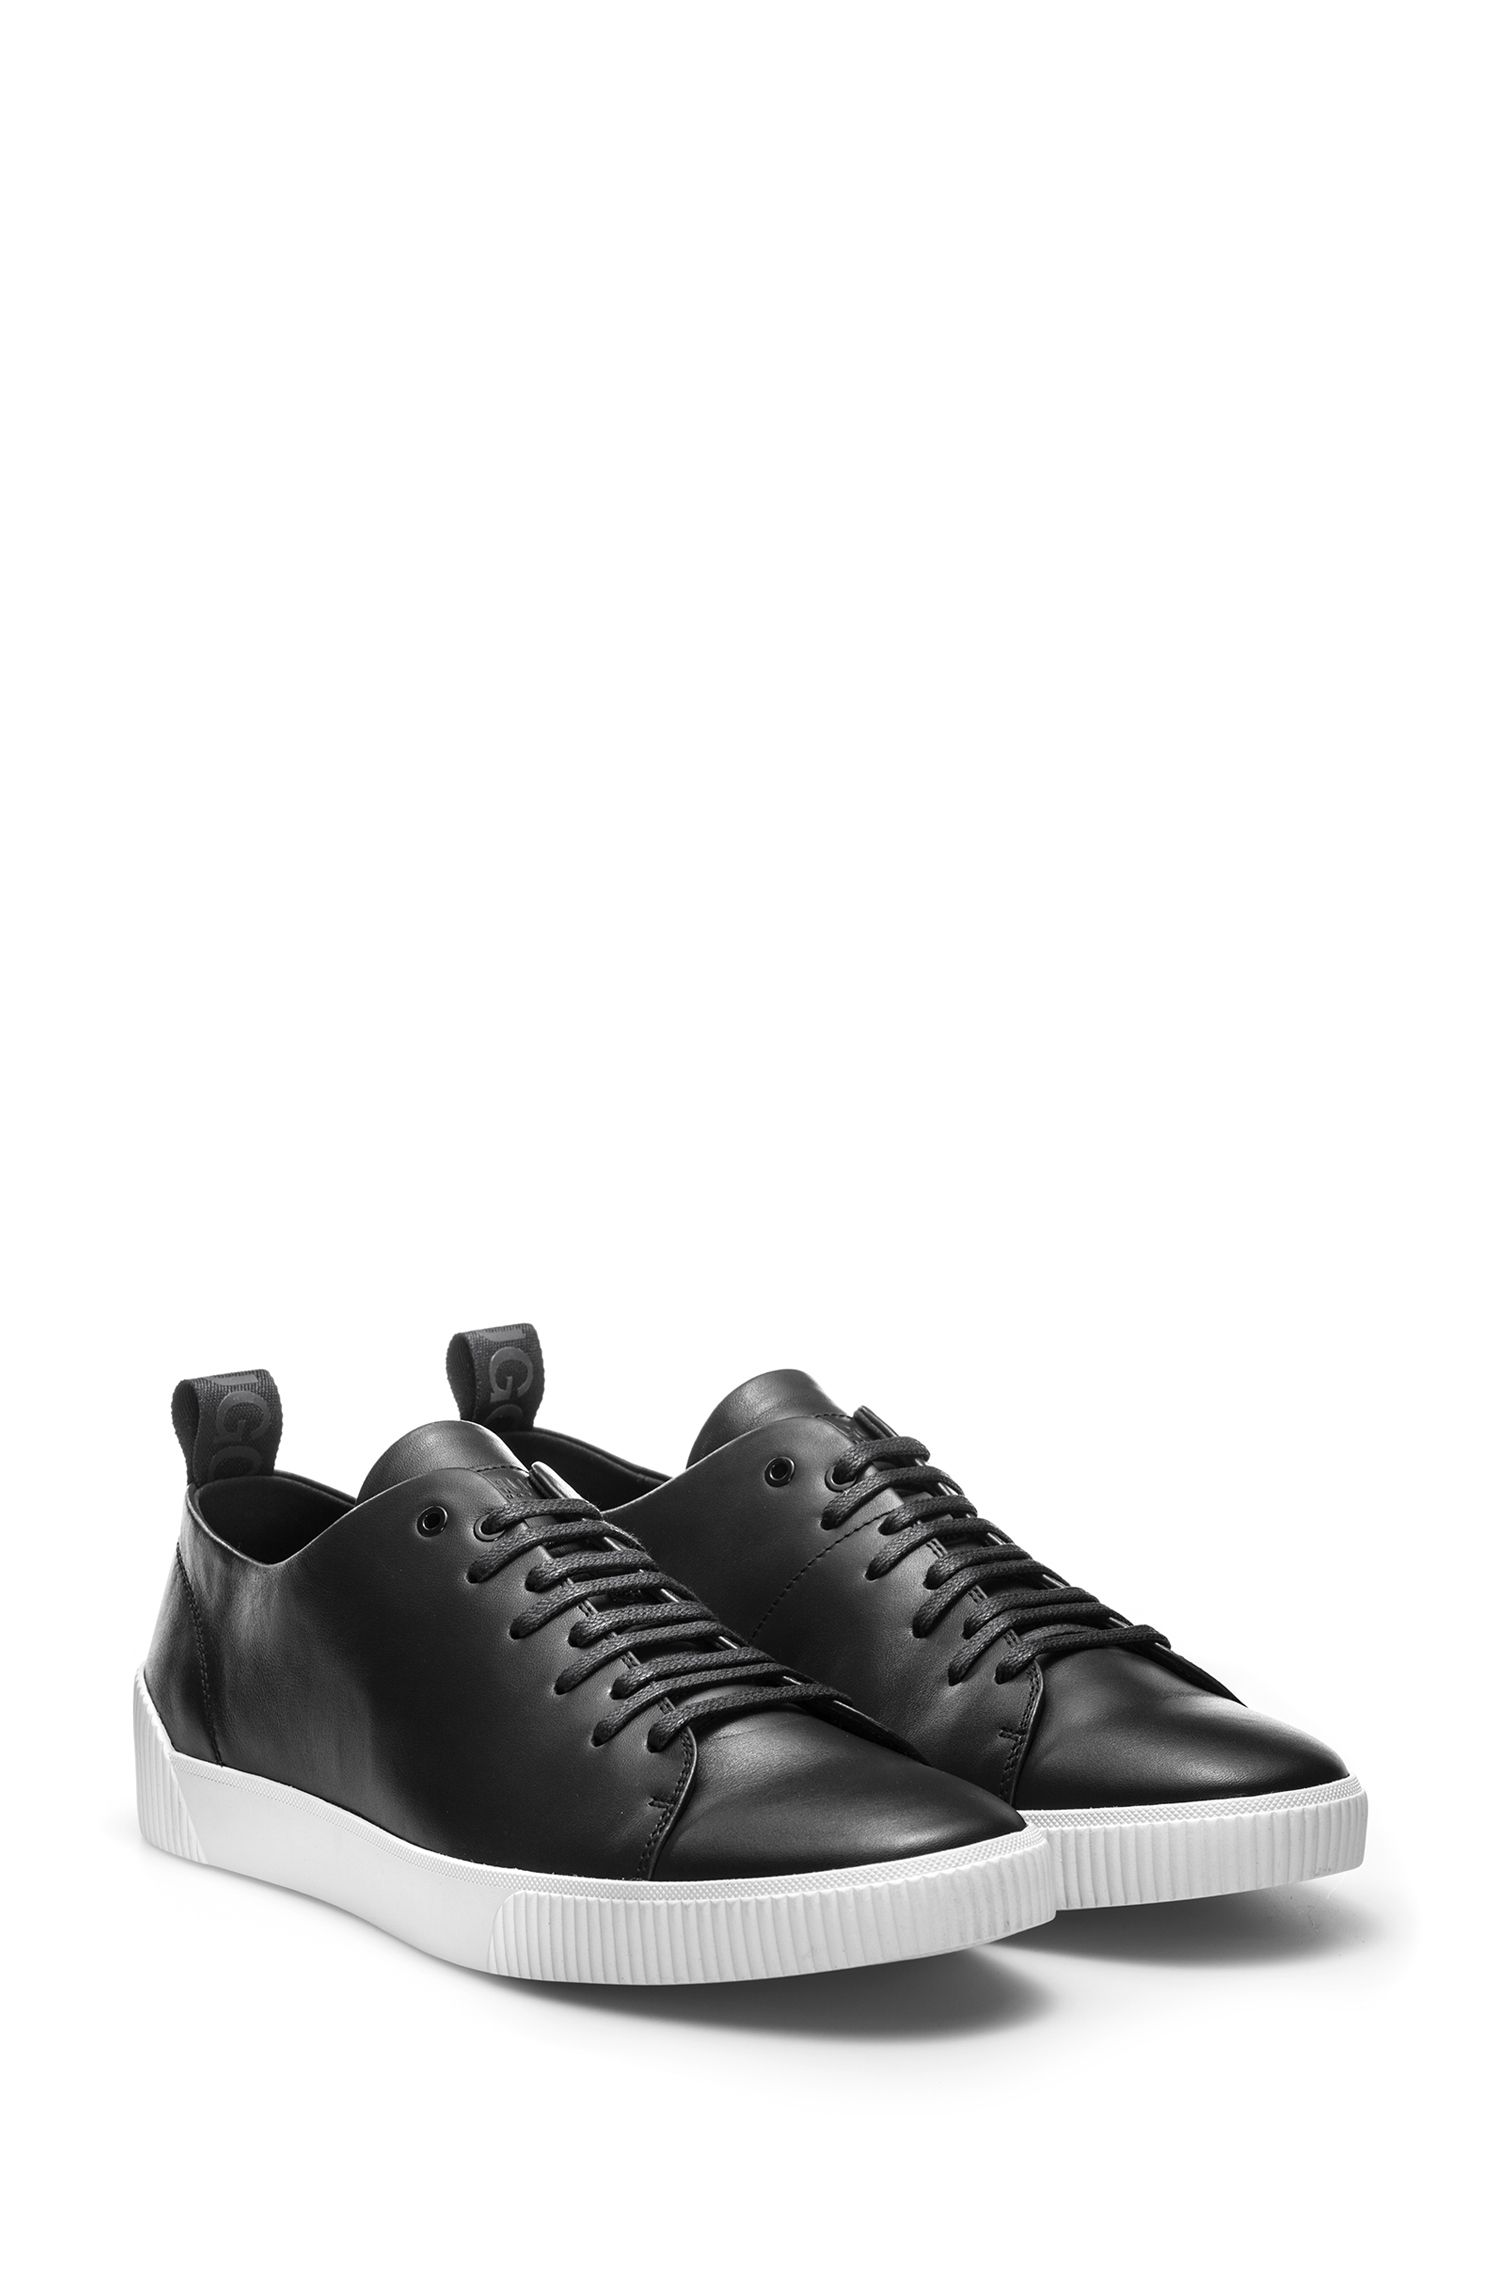 Low-top trainers in nappa leather with logo detail, Black